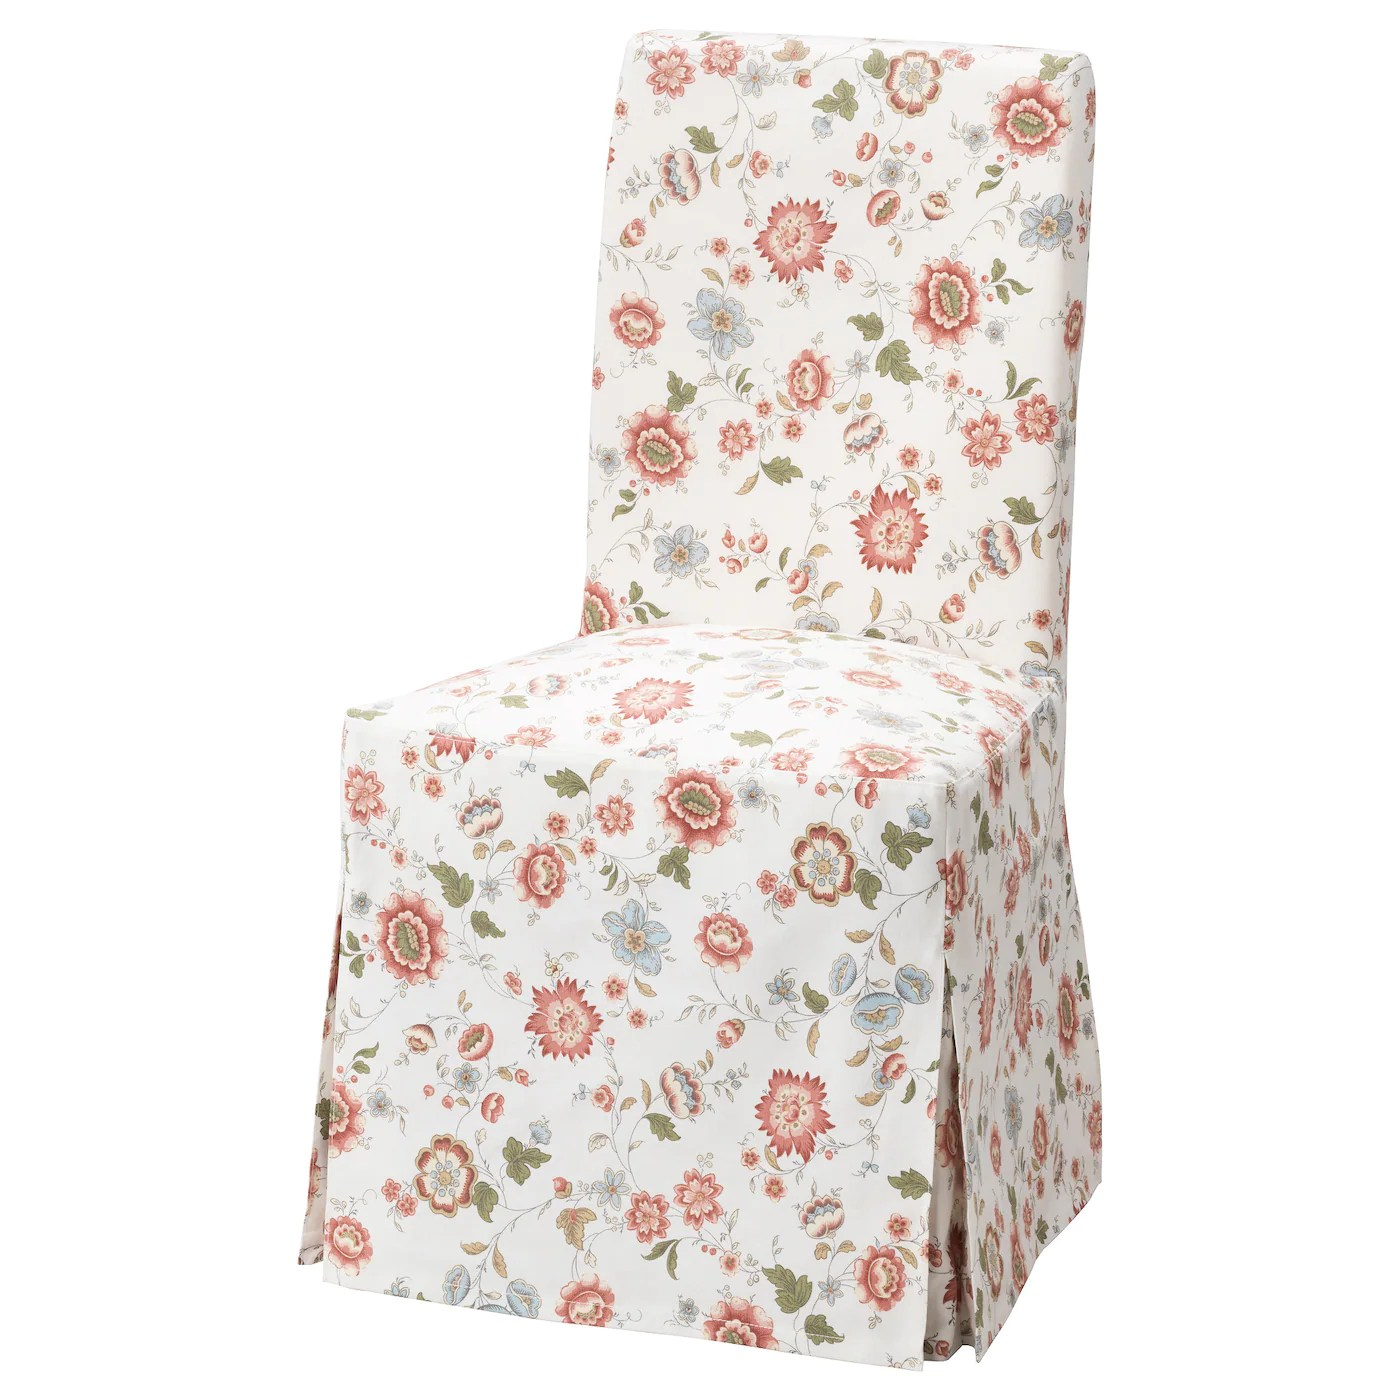 loose chair covers dublin office jack dining ikea ireland henriksdal cover long